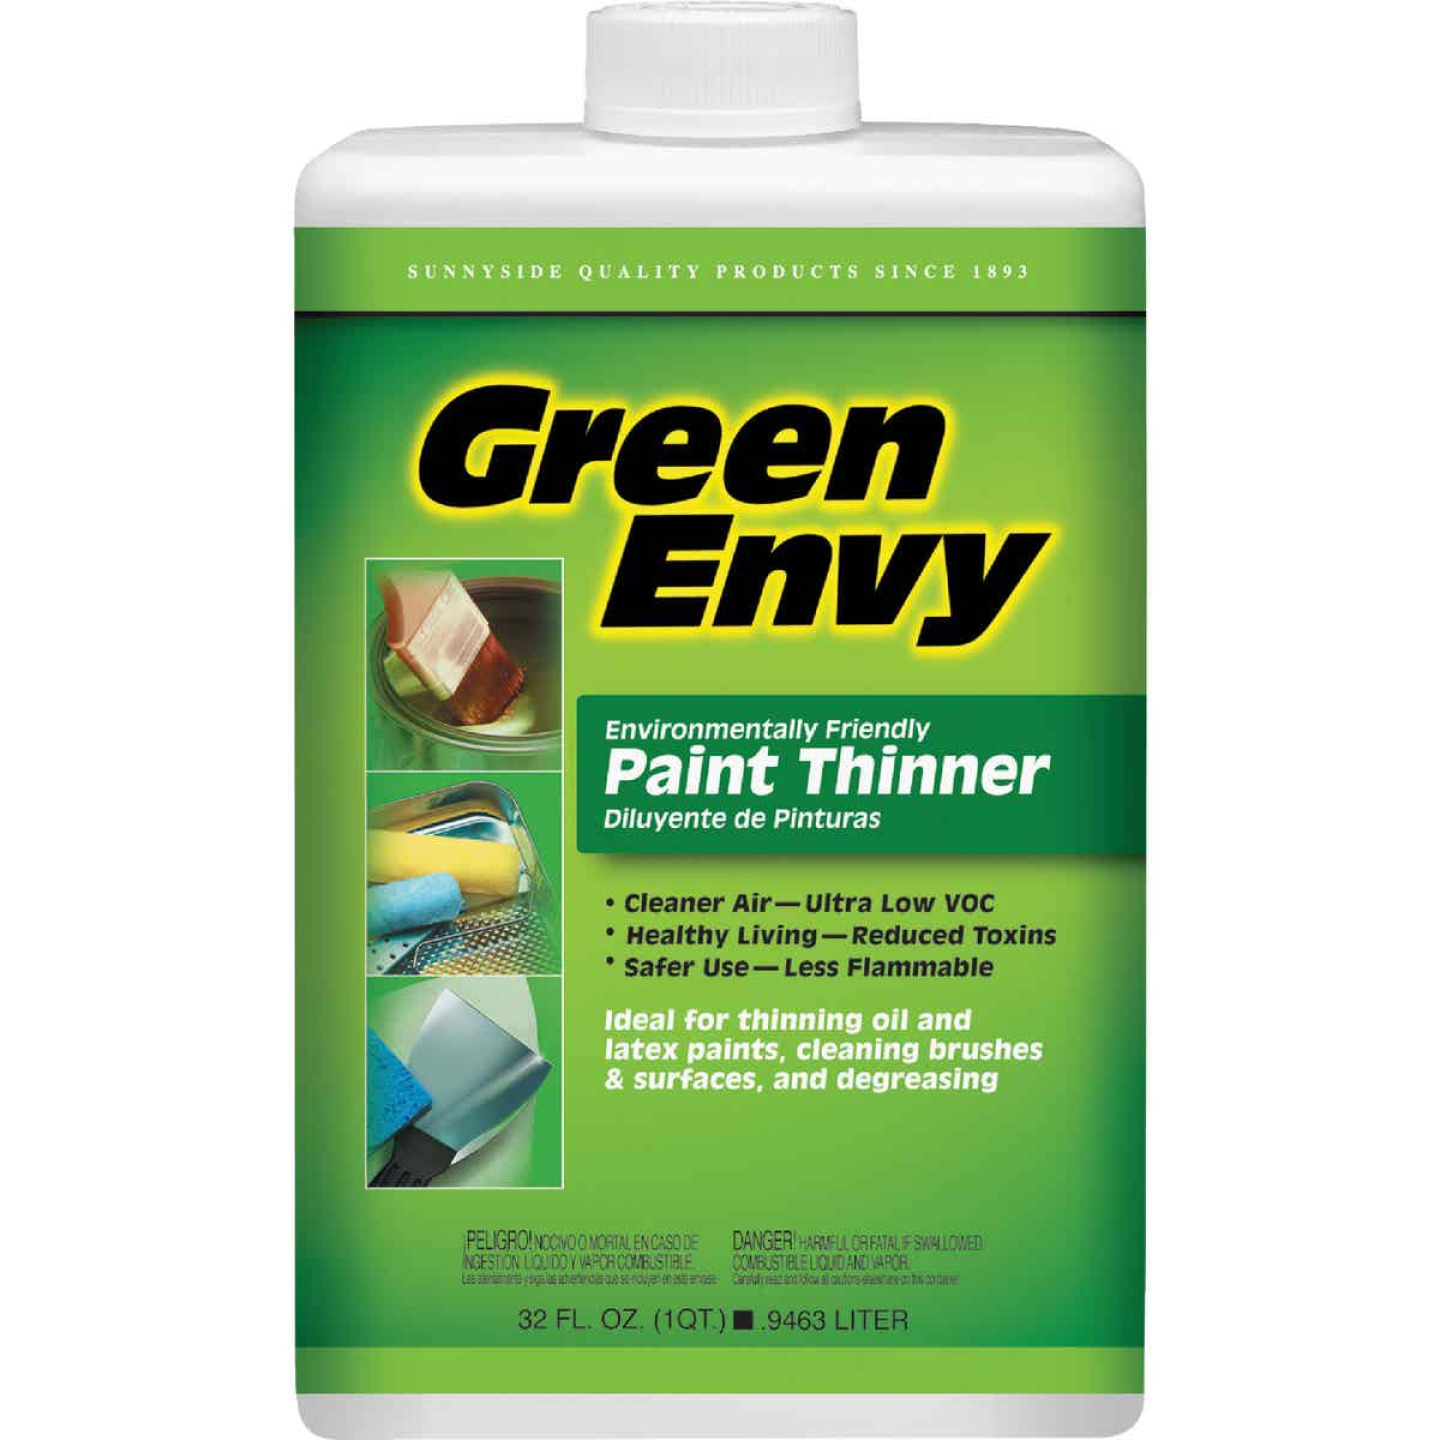 Sunnyside Green Envy 1 Quart Paint Thinner Image 1